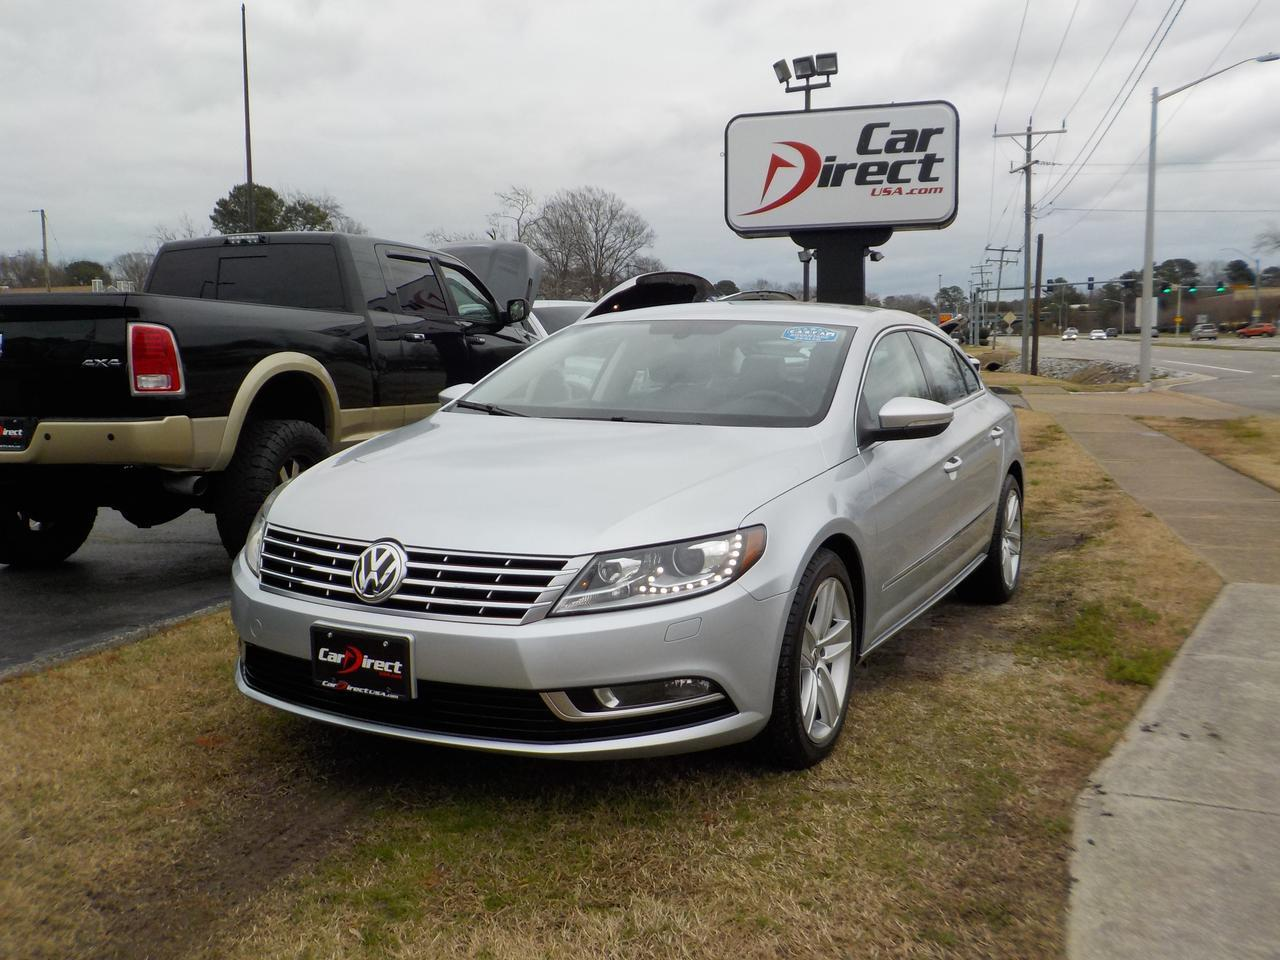 2013 VOLKSWAGEN CC SPORT PLUS PZEV, HEATED LEATHER SEATS, BLUETOOTH WIRELESS, SATALLITE CAPABILITIES, ONLY 88K MILES!